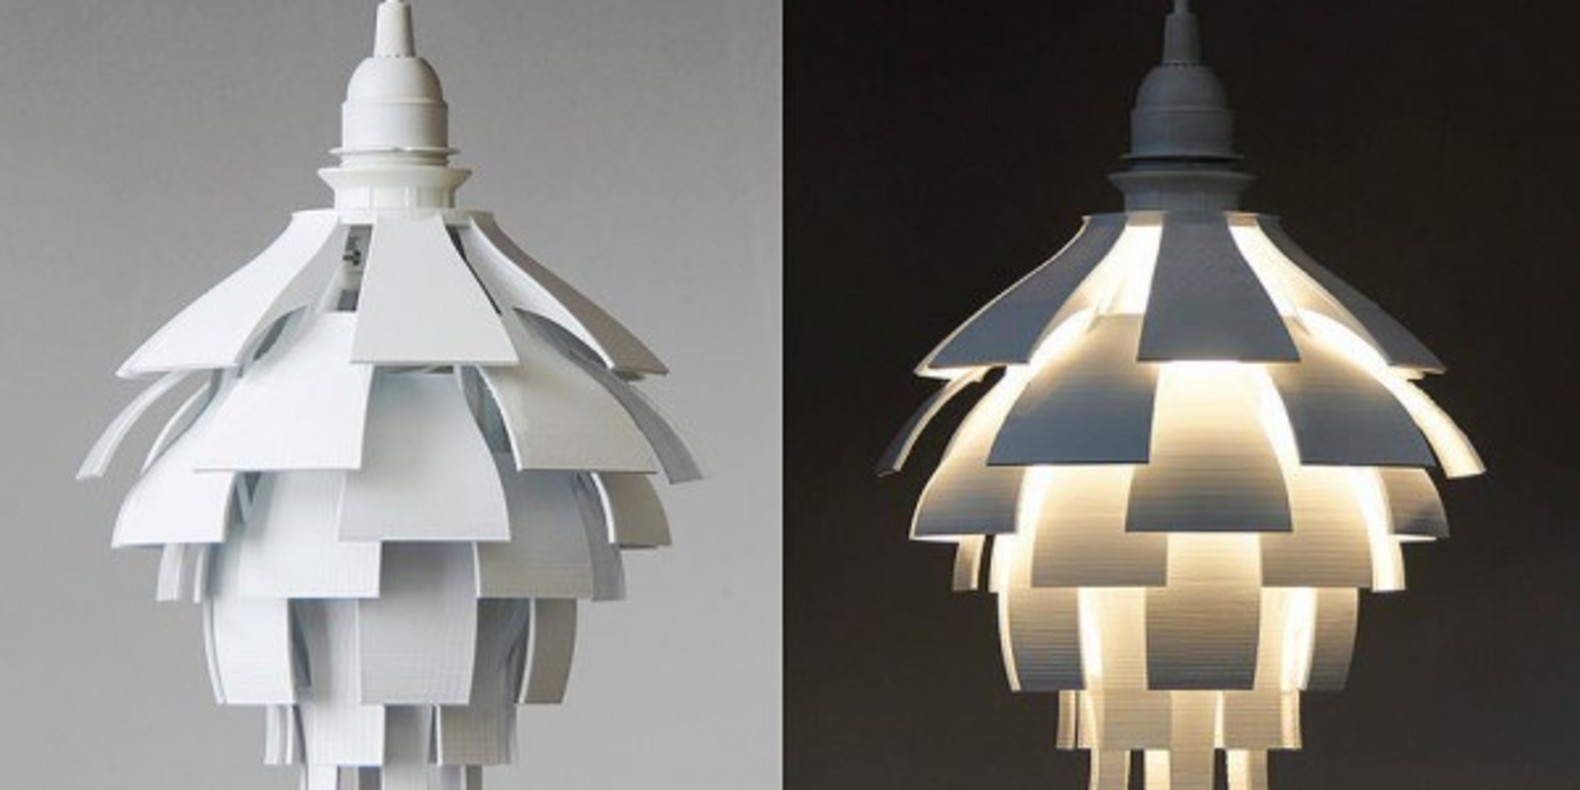 The artichoke lamp printed in 3D